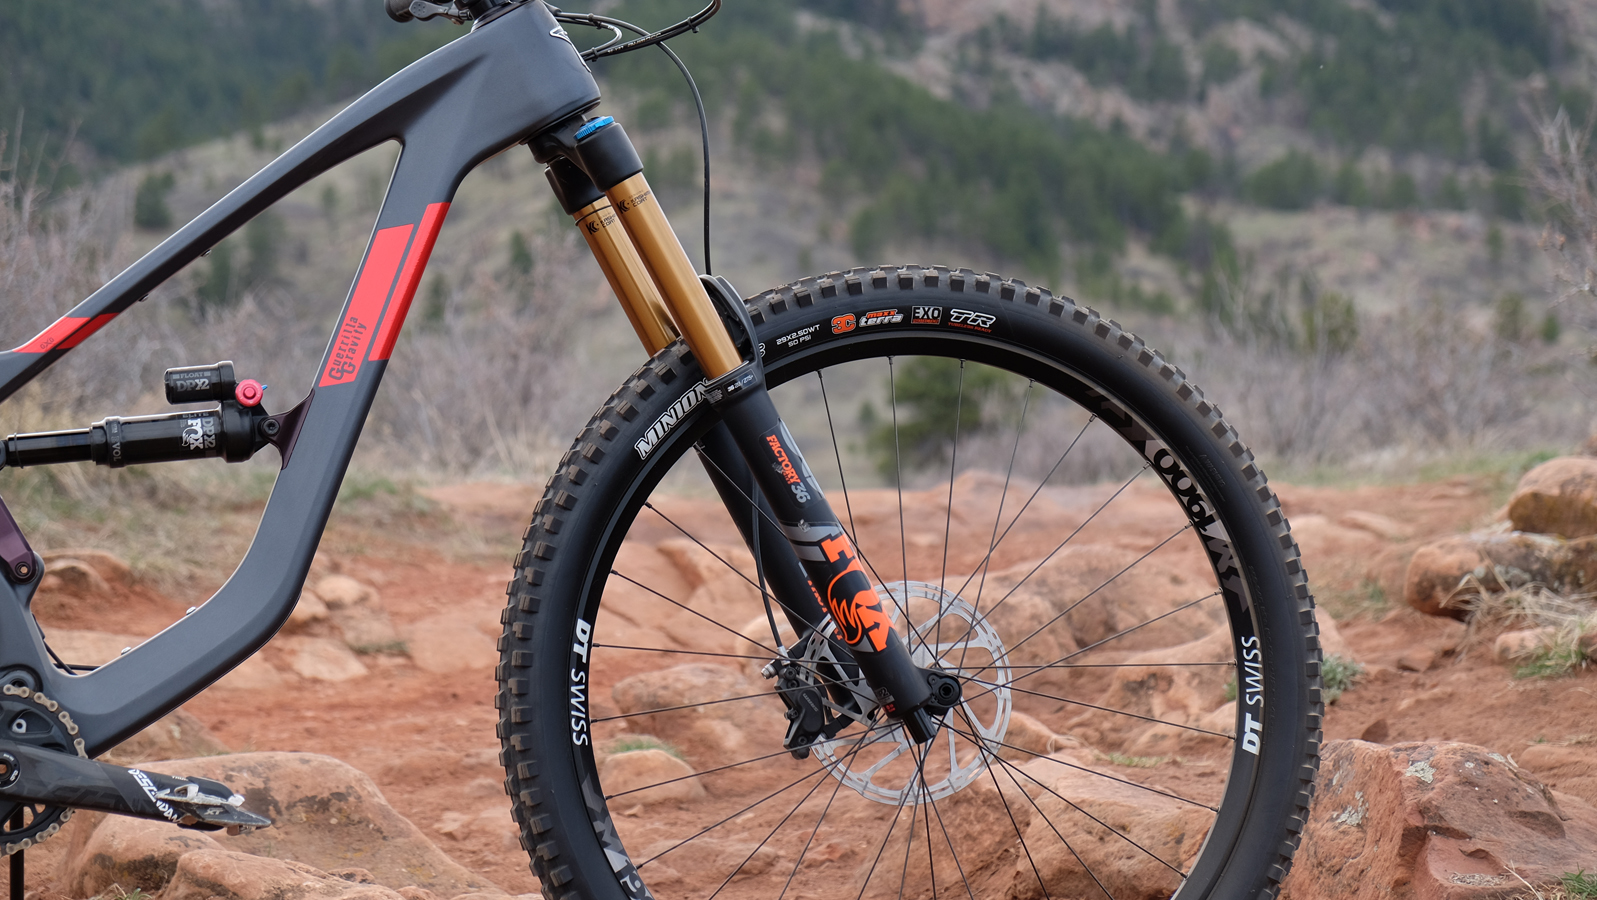 The slack head angle and 170mm fork are great at speed, but can be cumbersome on mild terrain.